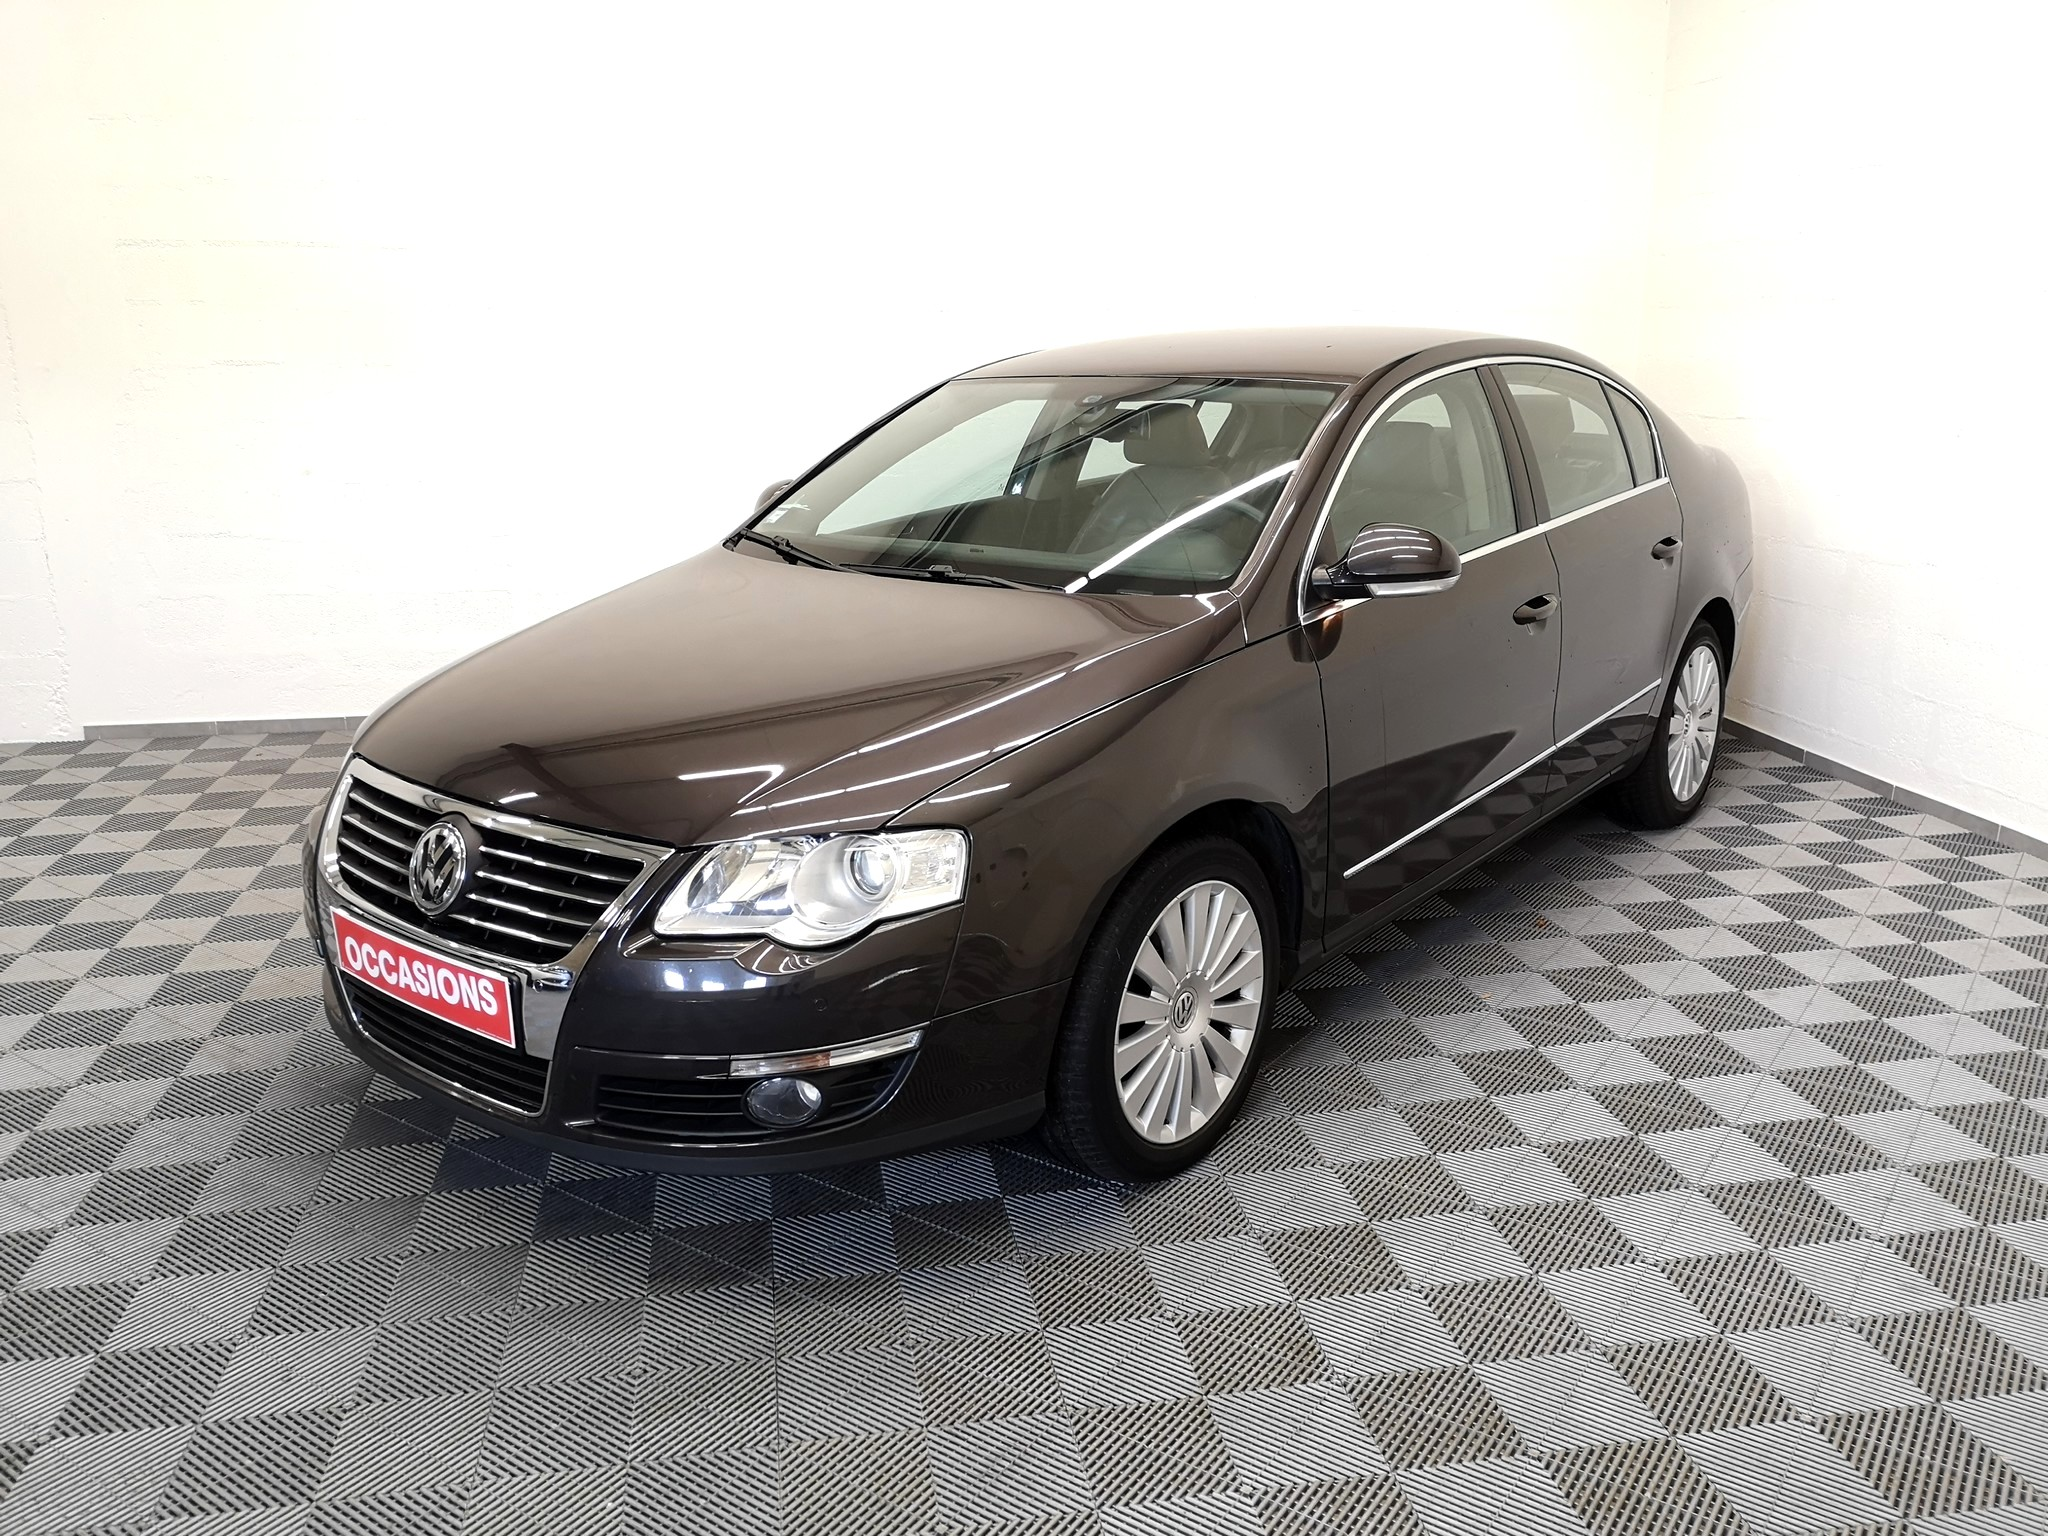 VOLKSWAGEN PASSAT 2007 à 0 € - Photo n°1